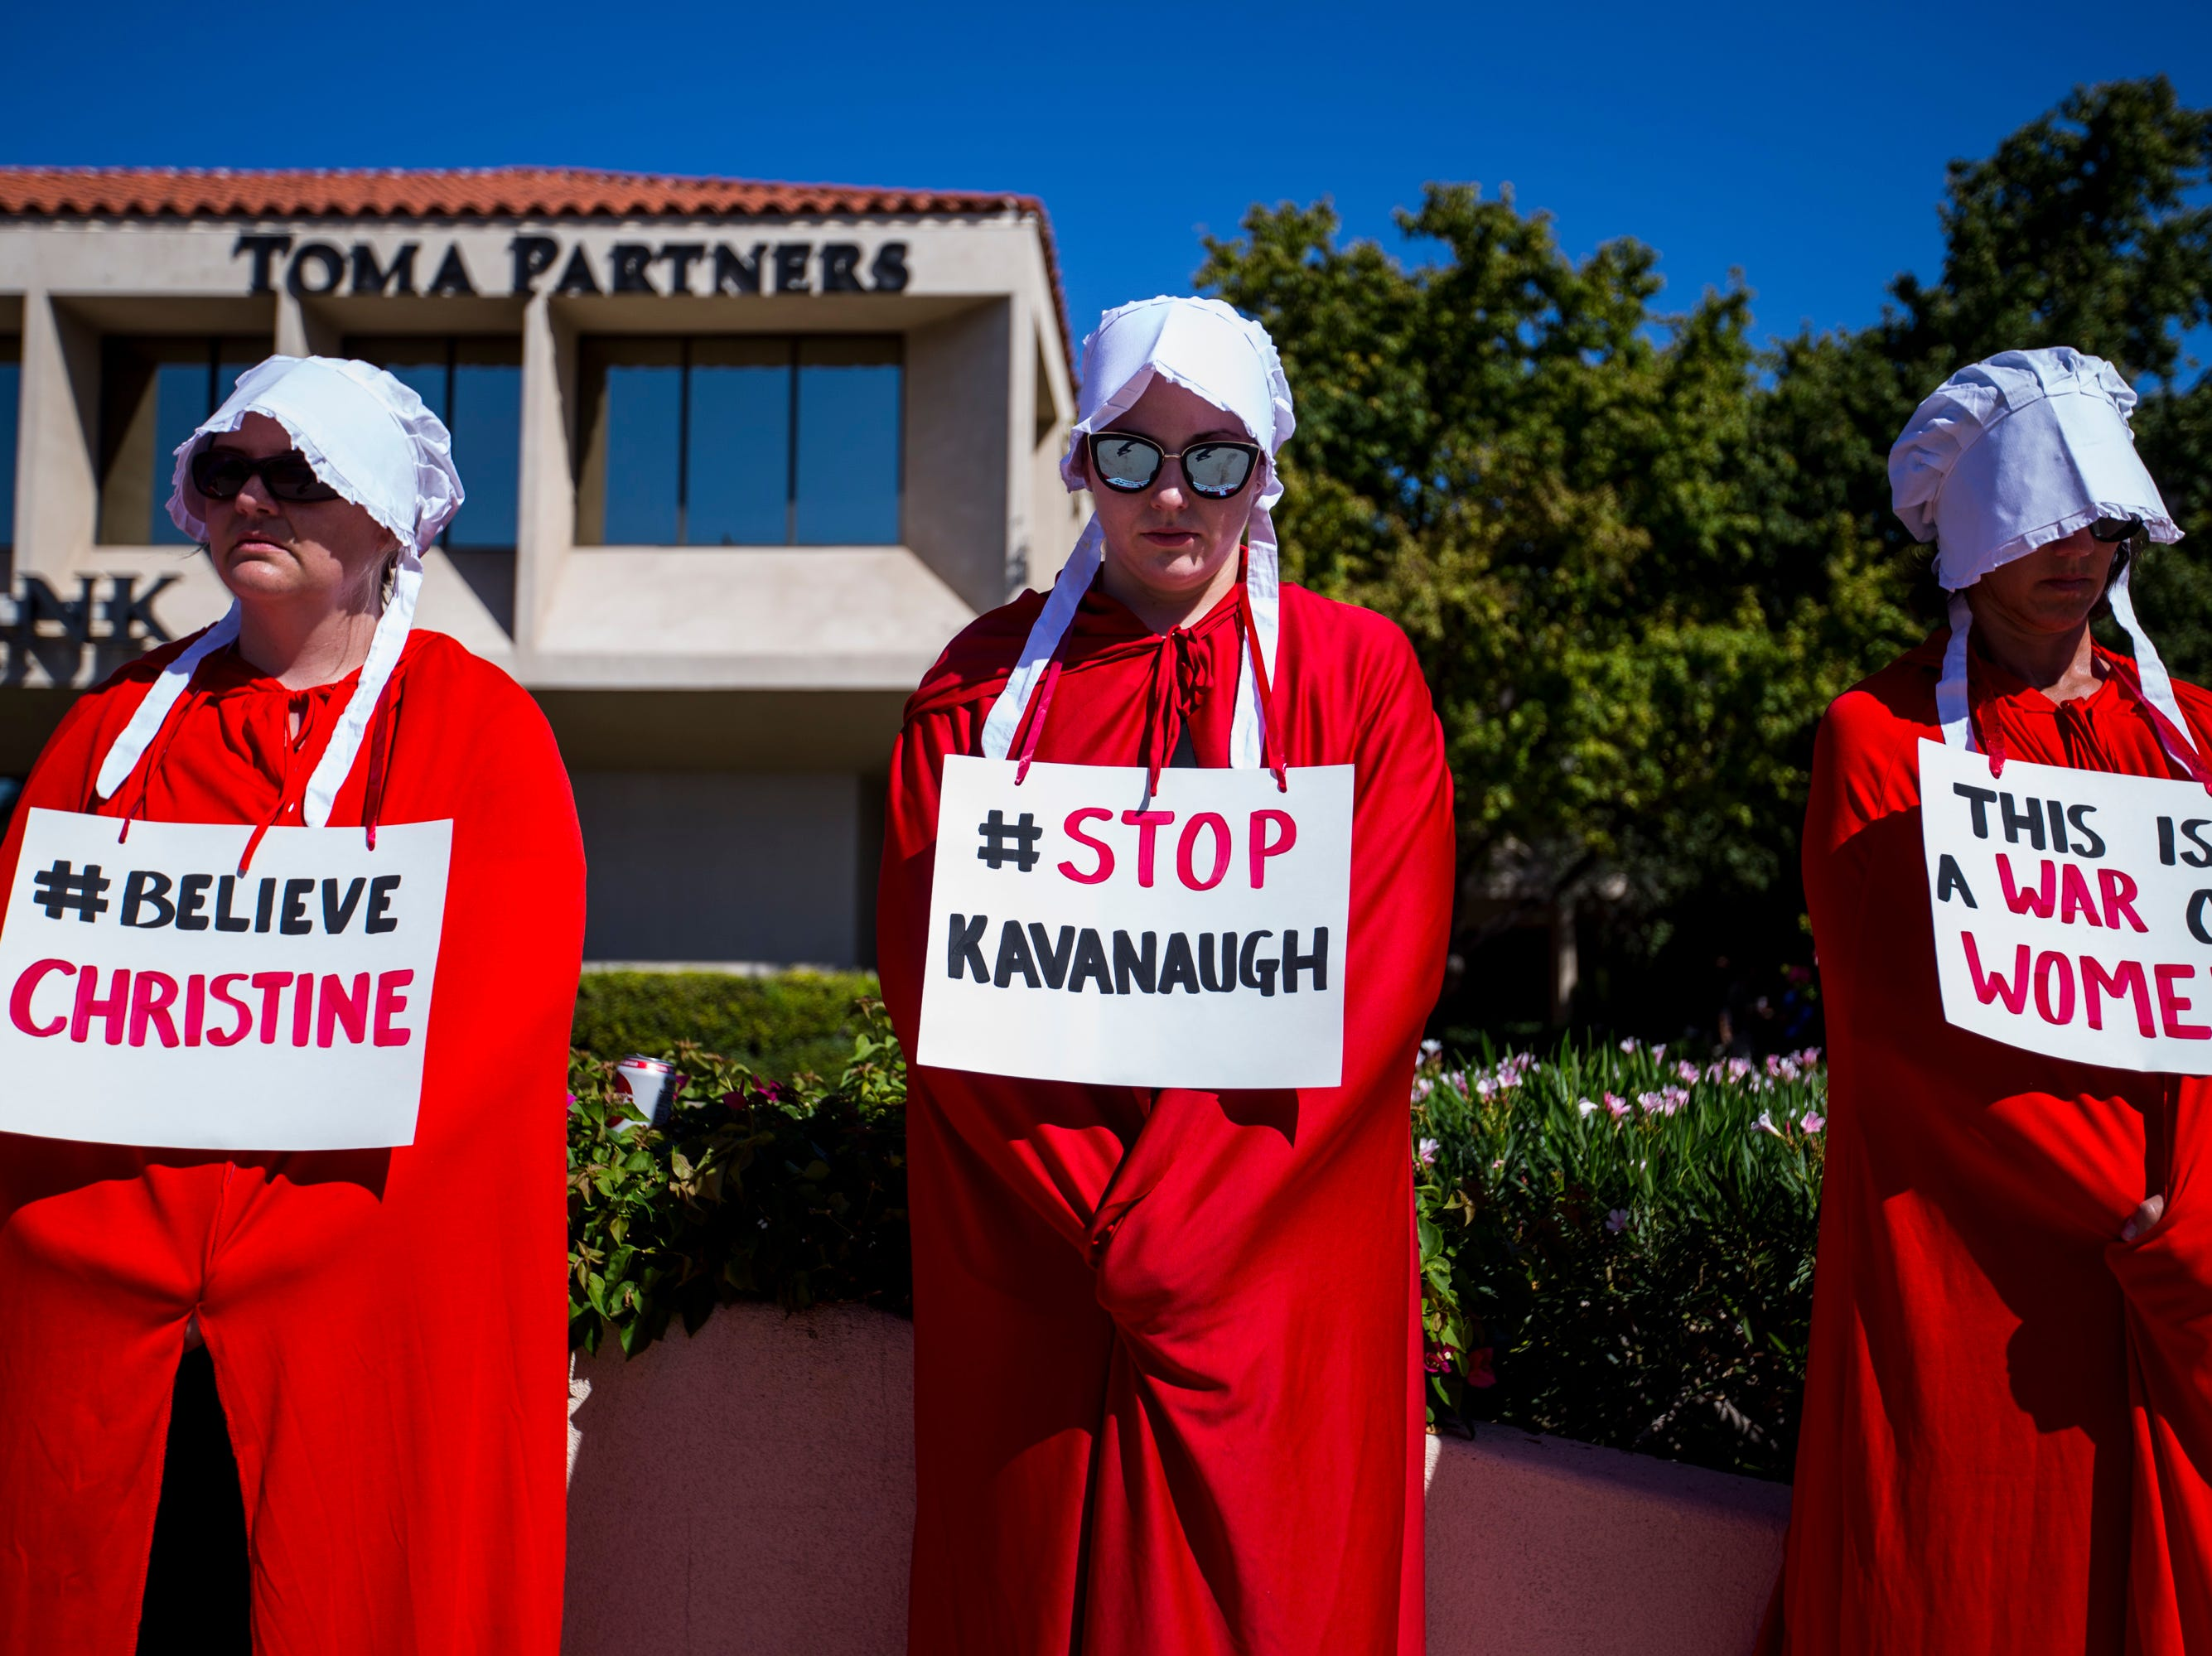 Michele Spiller (from left), Kristin Clark, and Margie Maynard, dressed as a handmaids, protest Supreme Court nominee Brett Kavanaugh outside Sen. Jeff Flake's office on Sept. 27, 2018, in Phoenix.